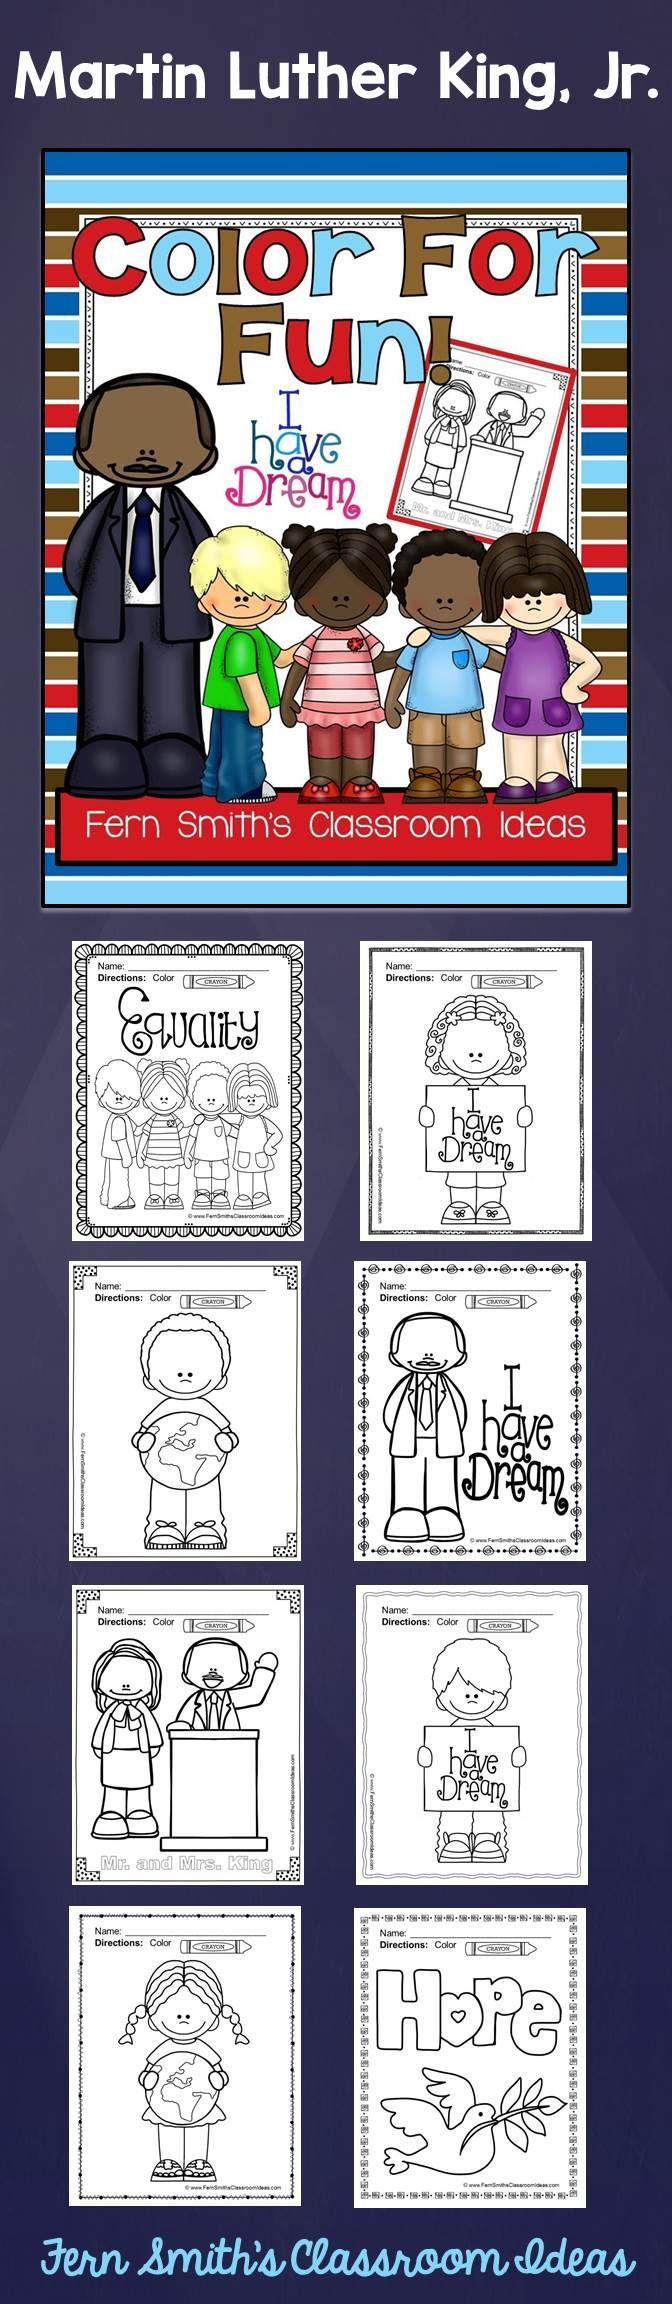 Preschool coloring pages martin luther king - Free Martin Luther King Jr Color For Fun Printable Coloring Pages